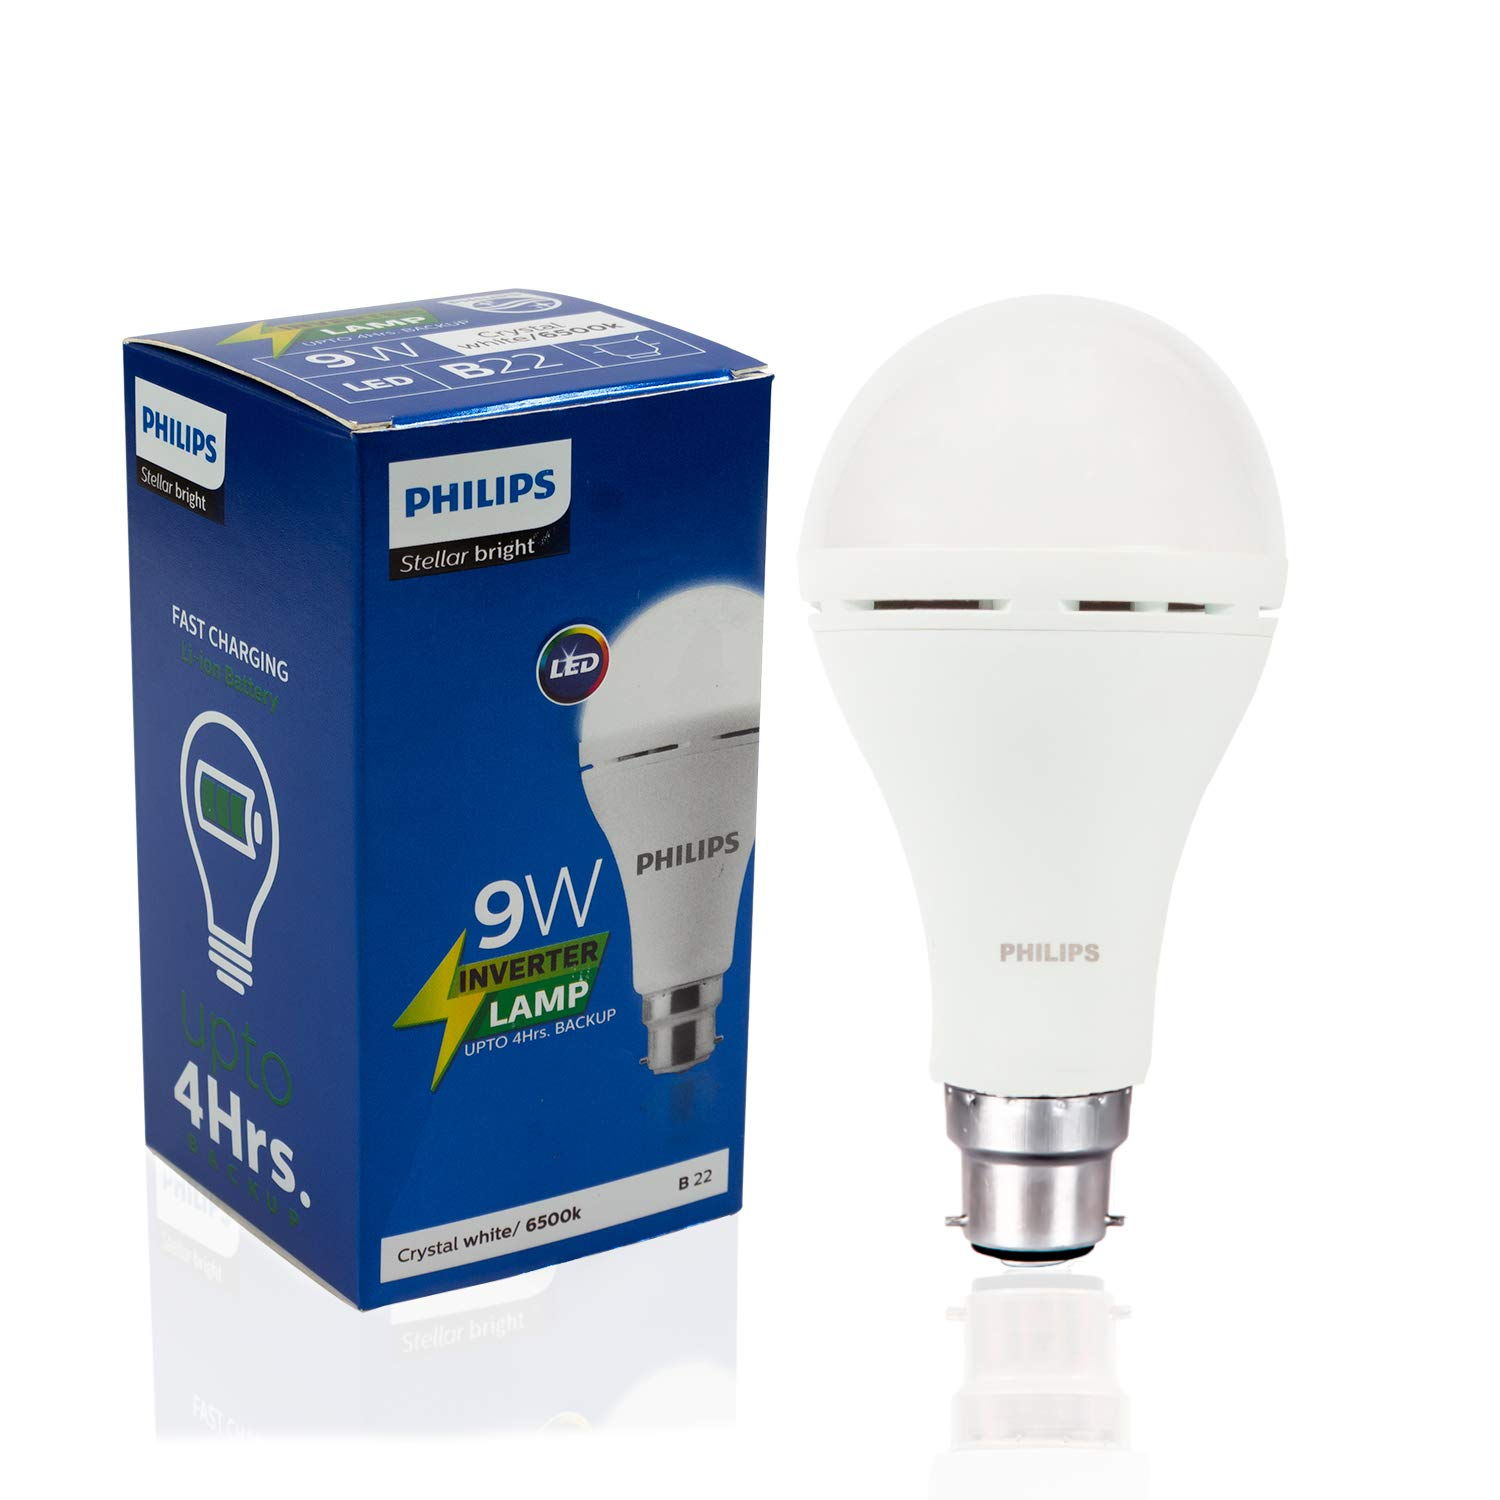 Philips Inverter Bulb 9 Watt Rechargeable Emergency LED Bulb for Home, Cool Daylight, Base B22